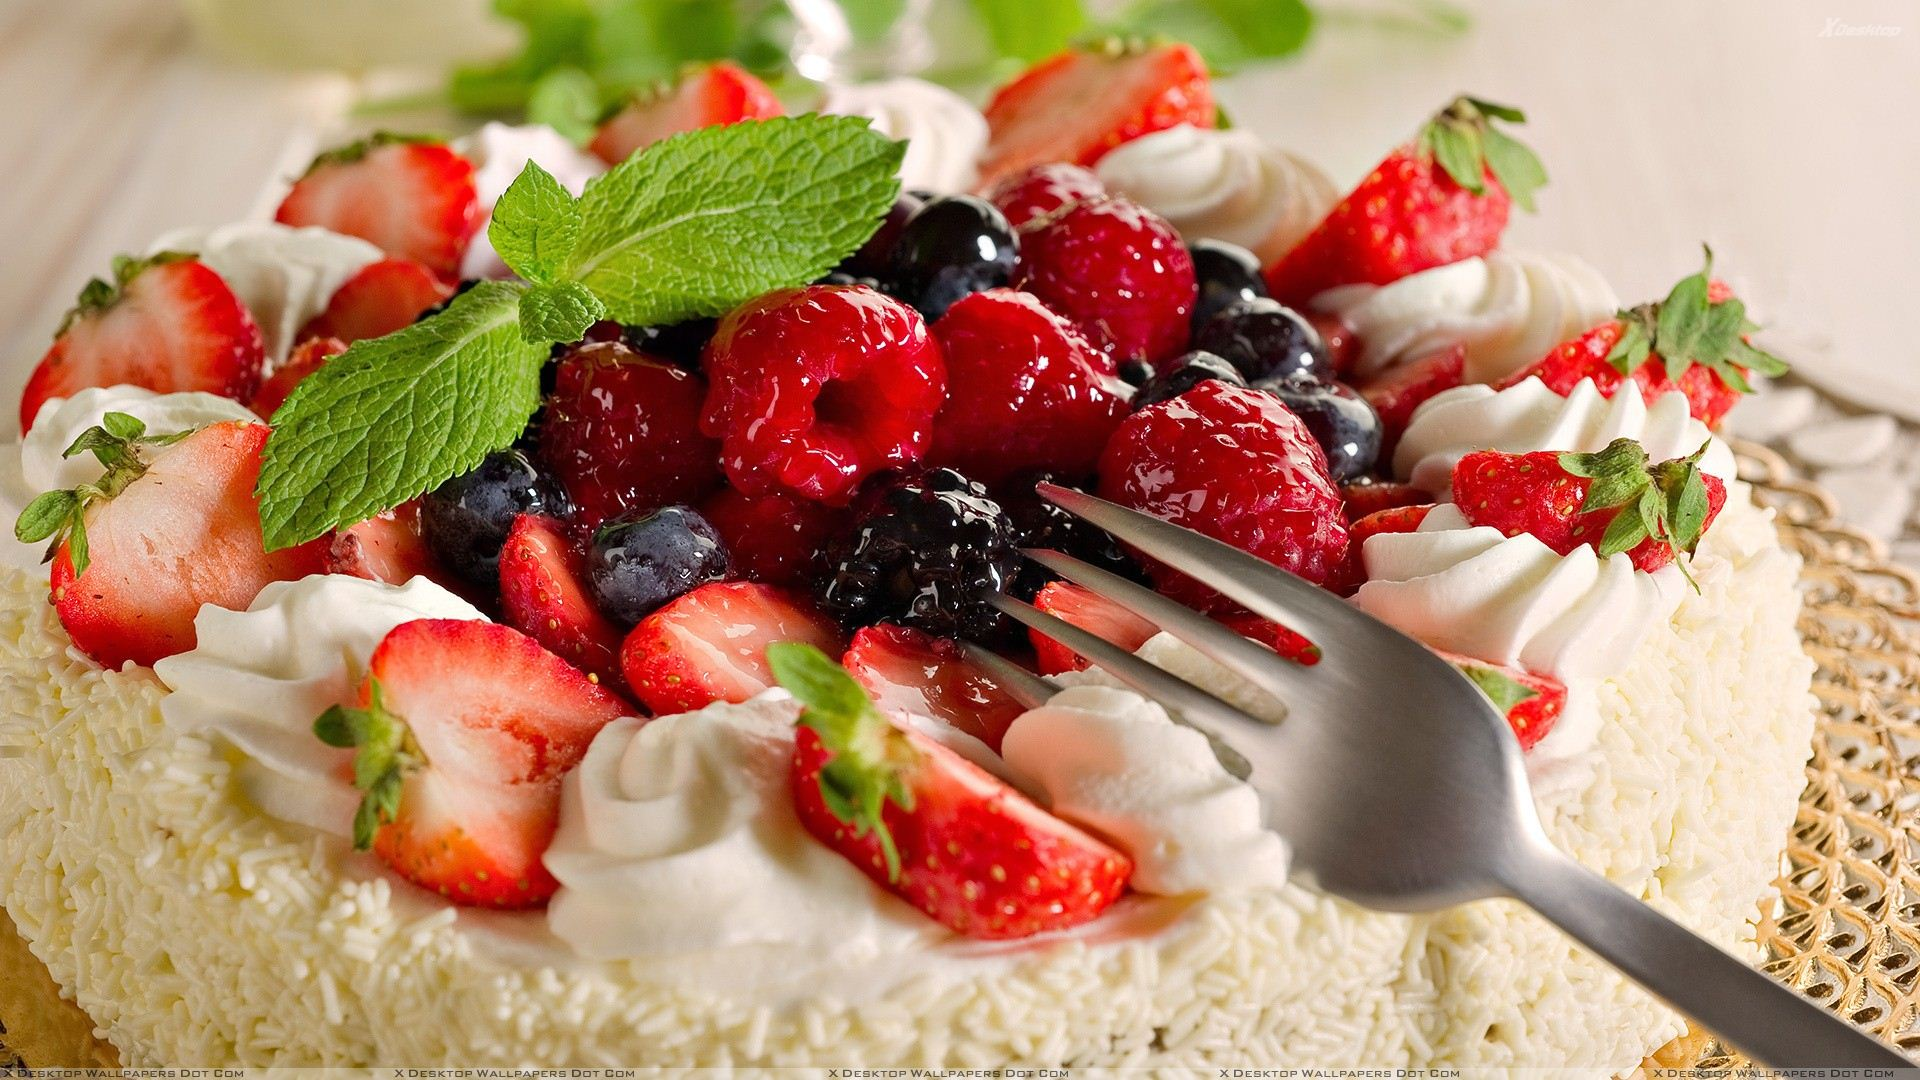 Strawberry And Blueberry Cake Closeup